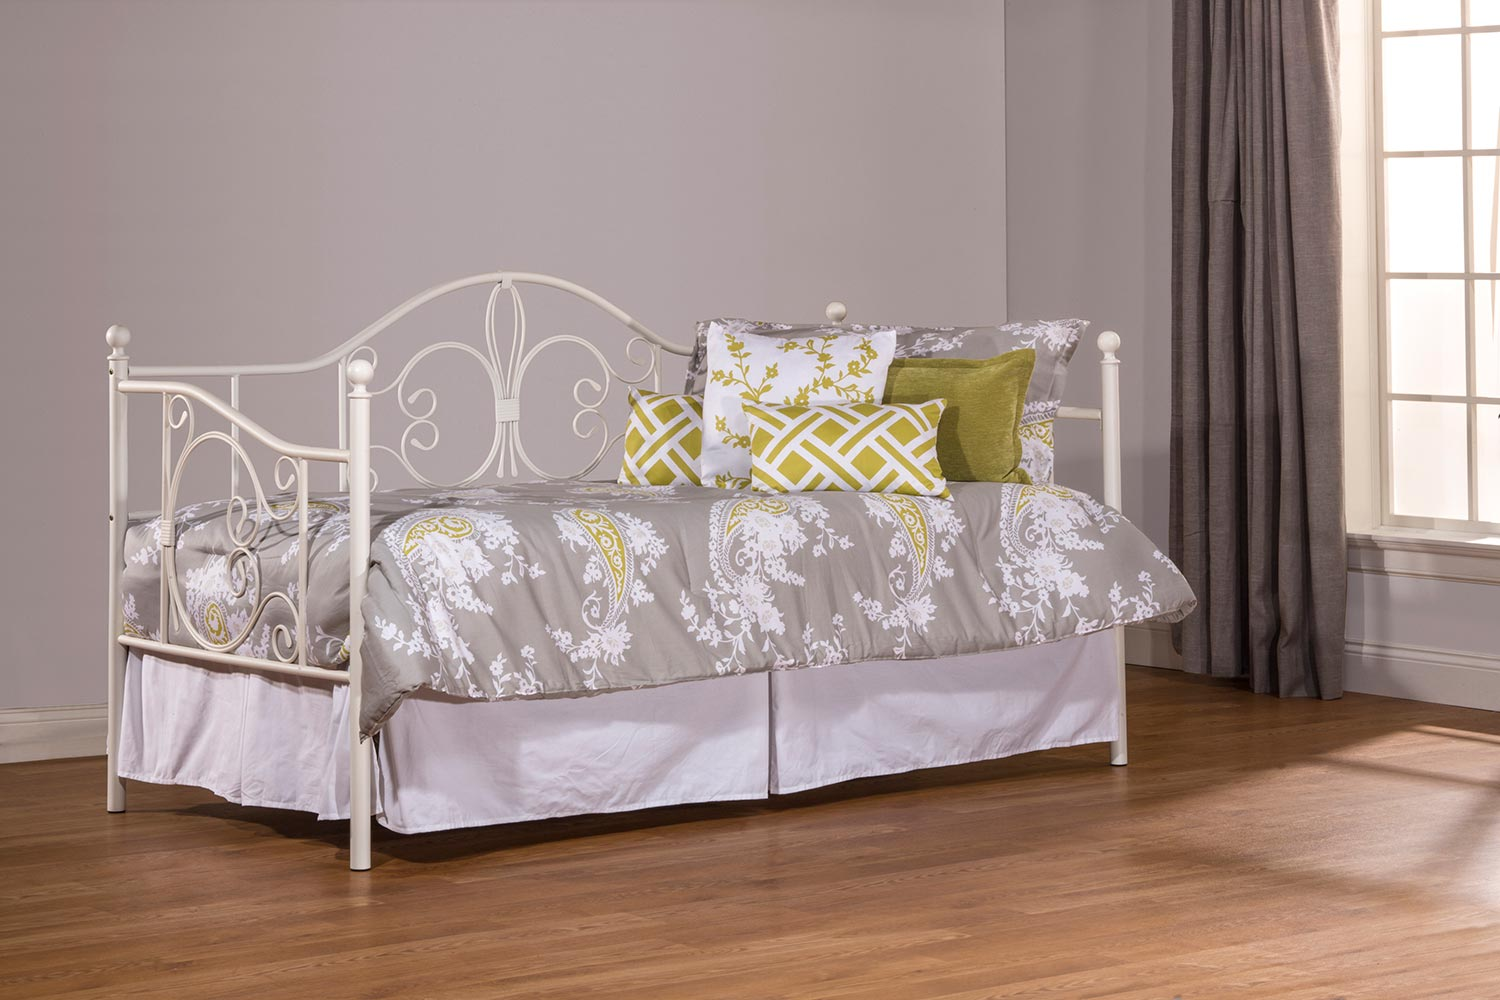 Hillsdale Ruby Daybed - Textured White